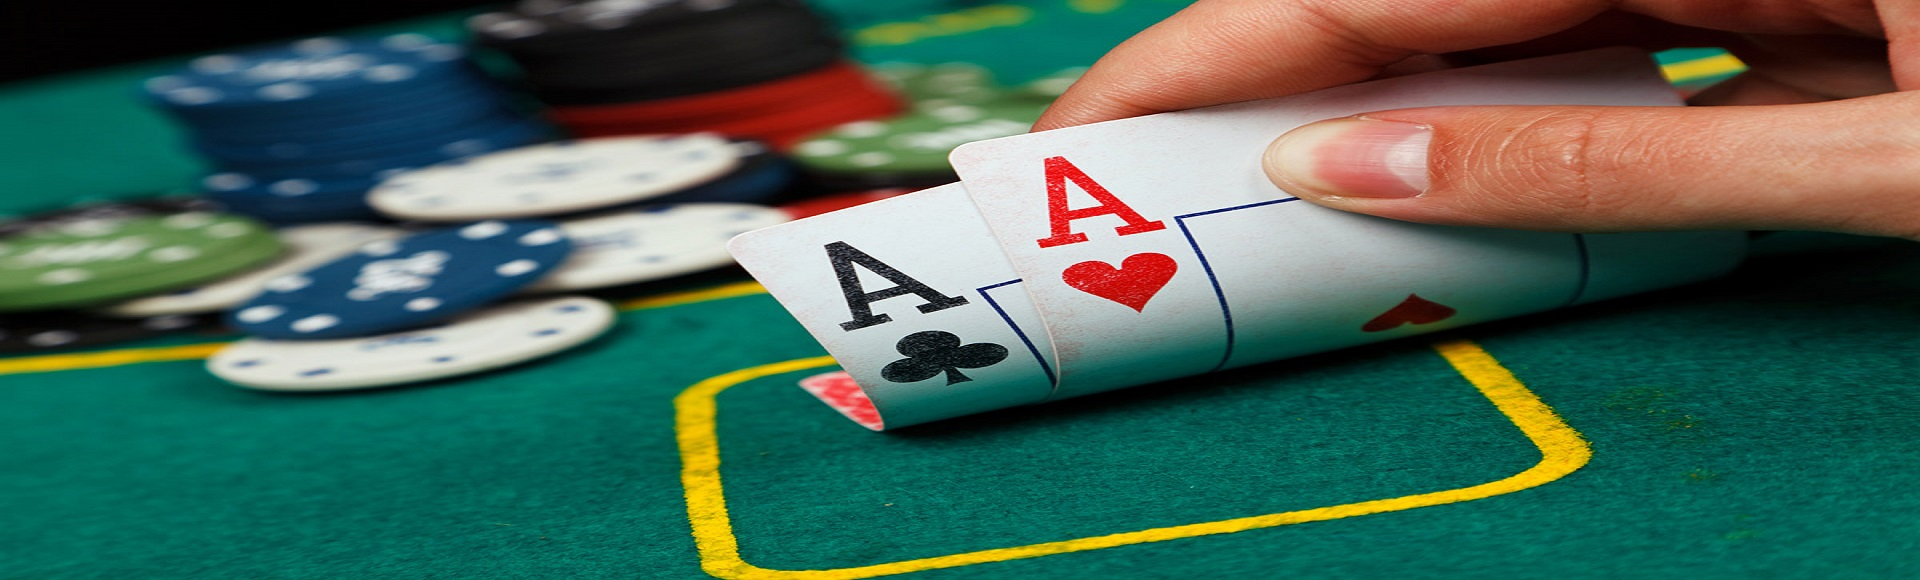 Is lady luck with you? Join our poker night!